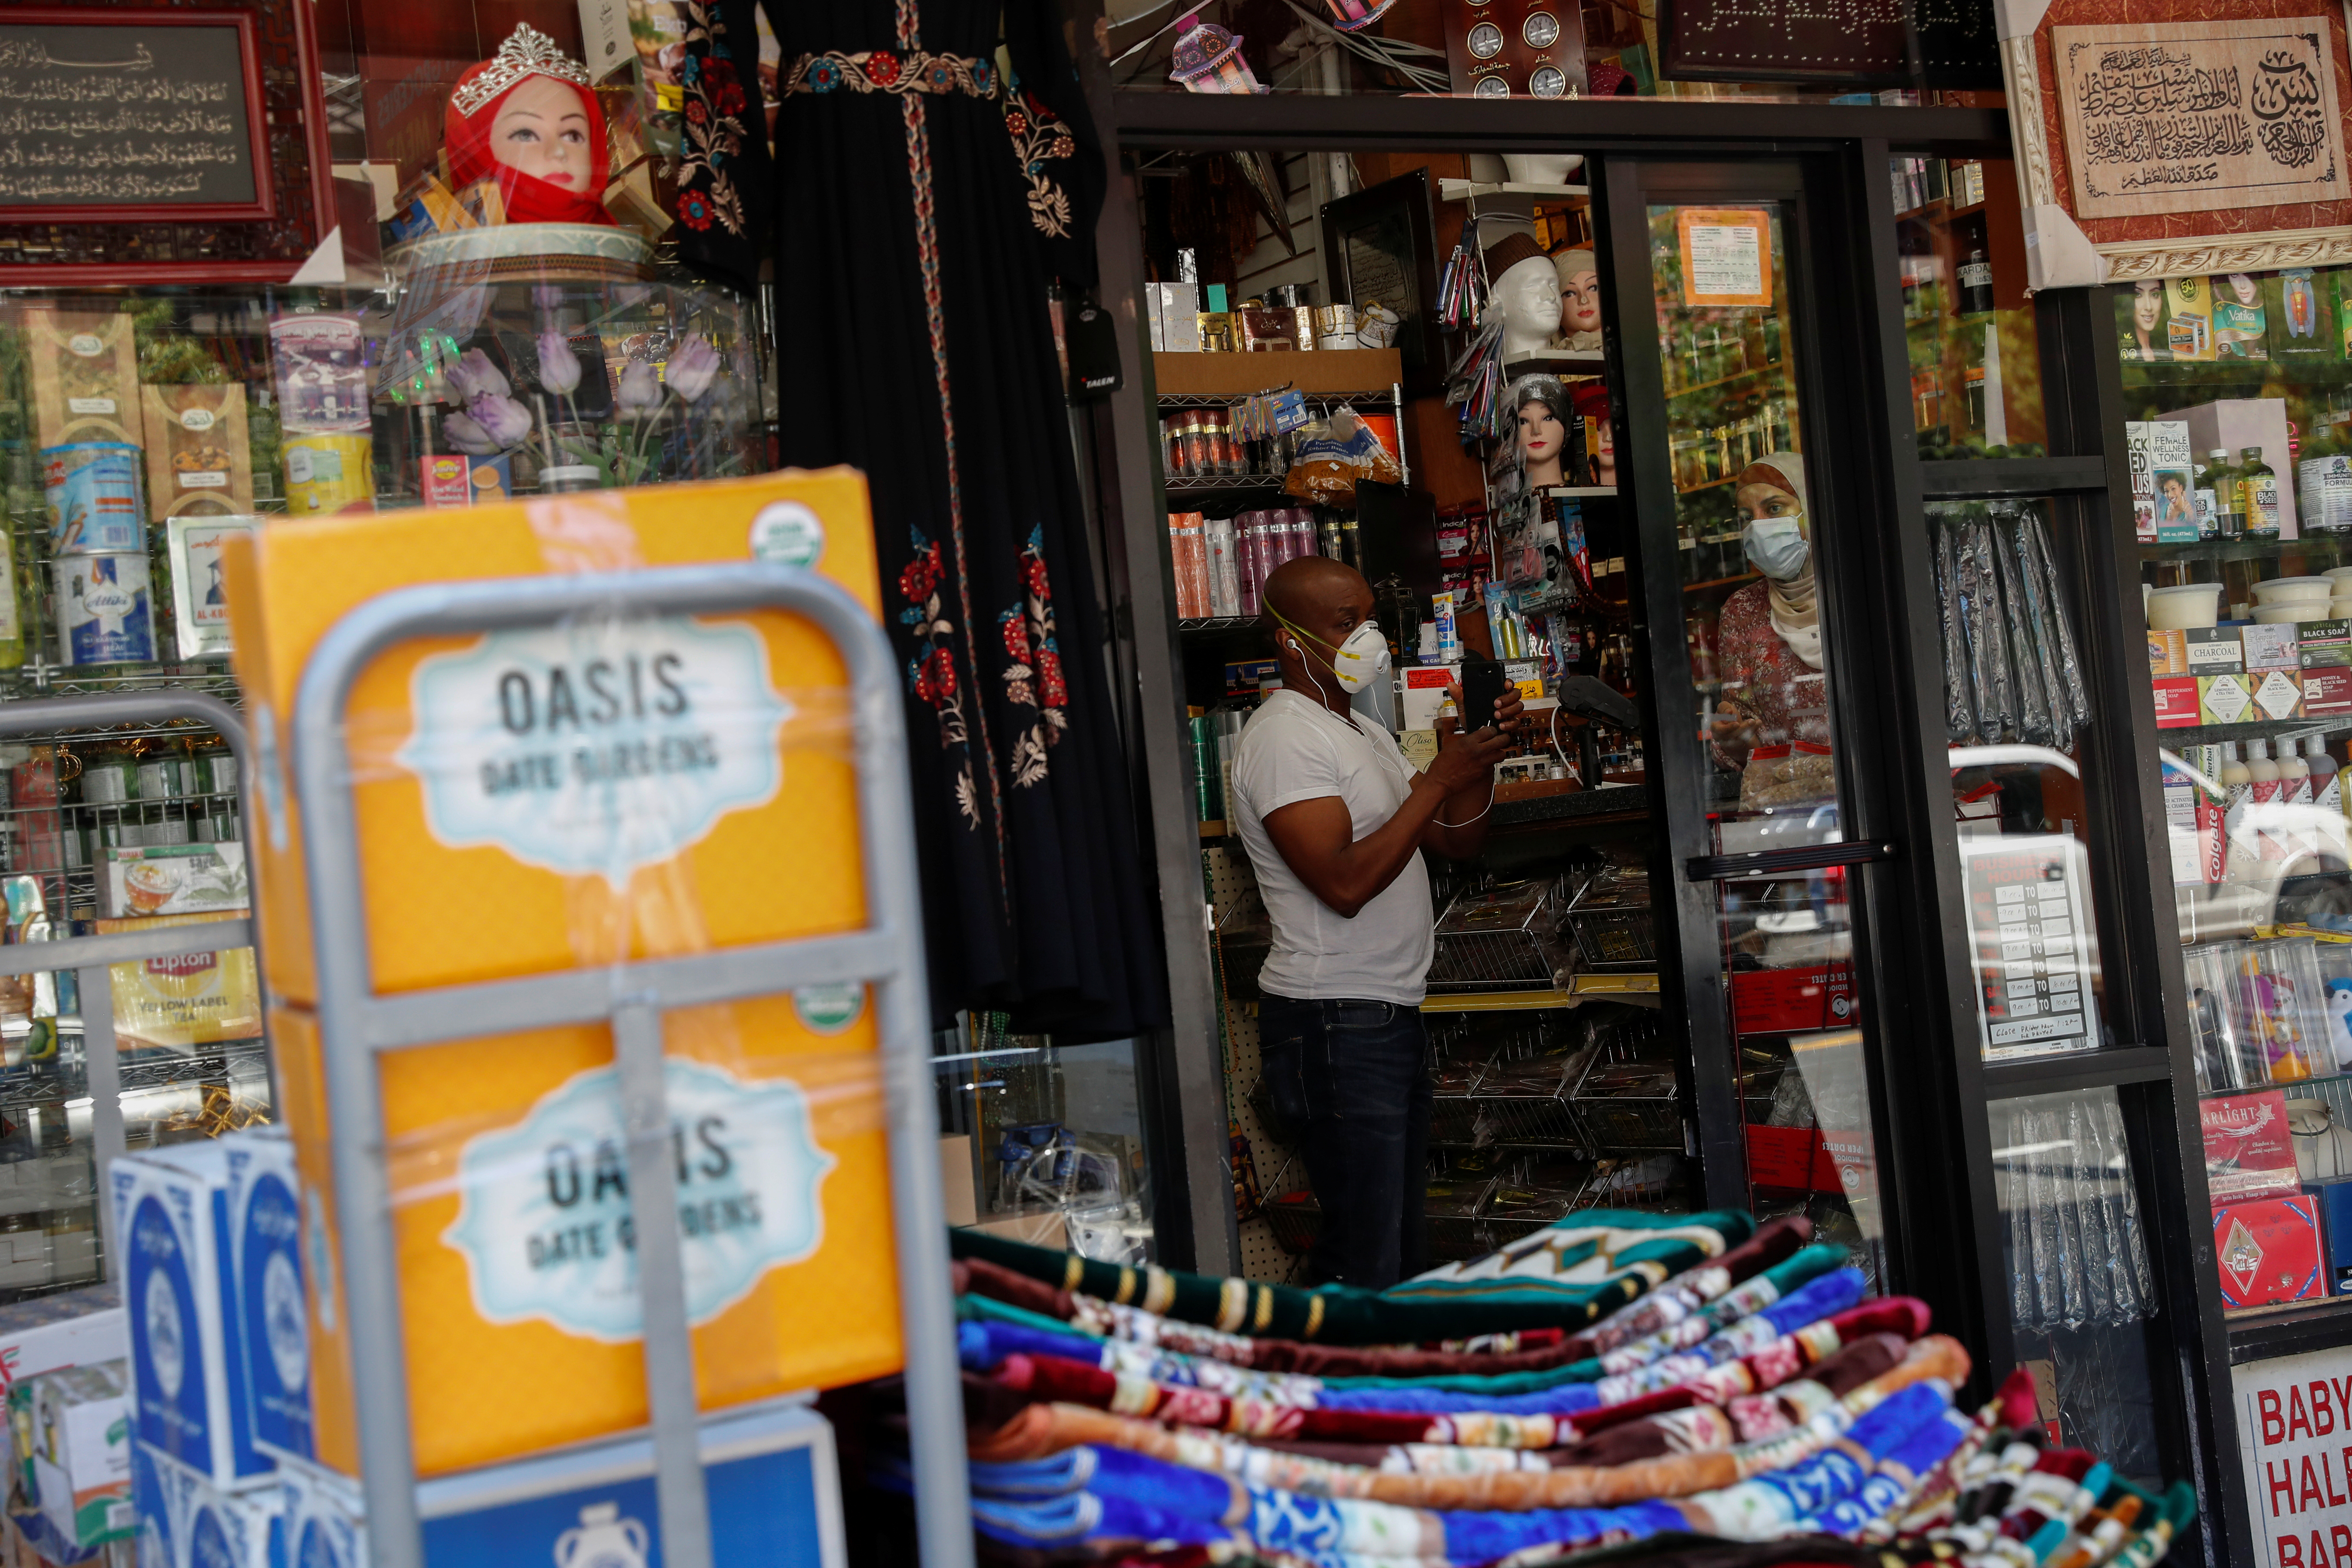 A shopkeeper works inside his retail store as the phase one reopening of New York City continues during the outbreak of the coronavirus disease (COVID-19) in the Brooklyn borough of New York City, New York, U.S. June 9, 2020. REUTERS/Shannon Stapleton